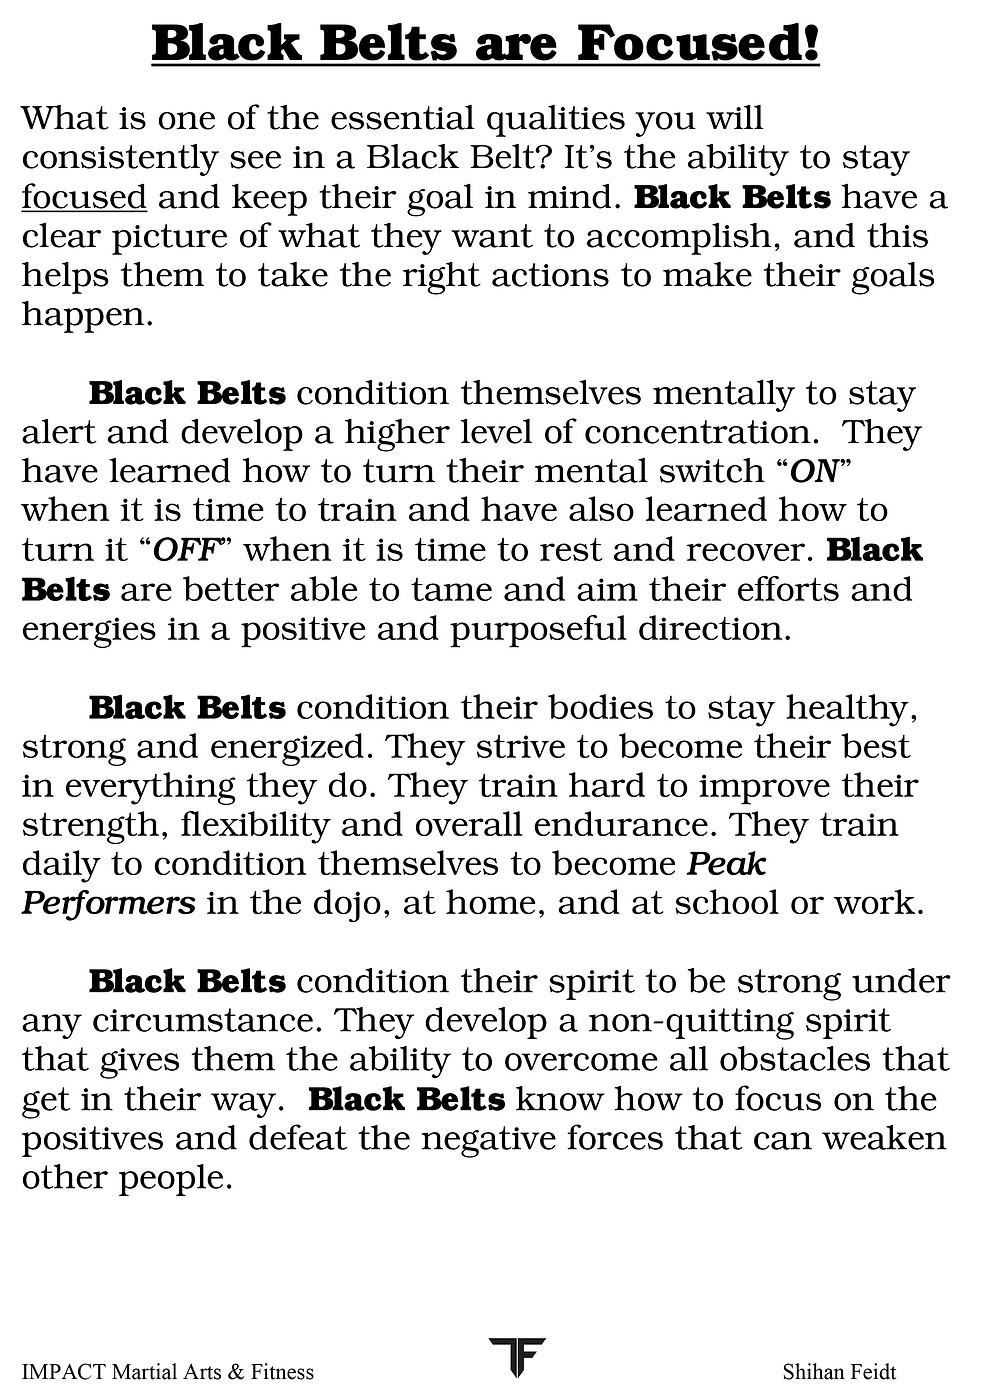 black-belts-are-focused